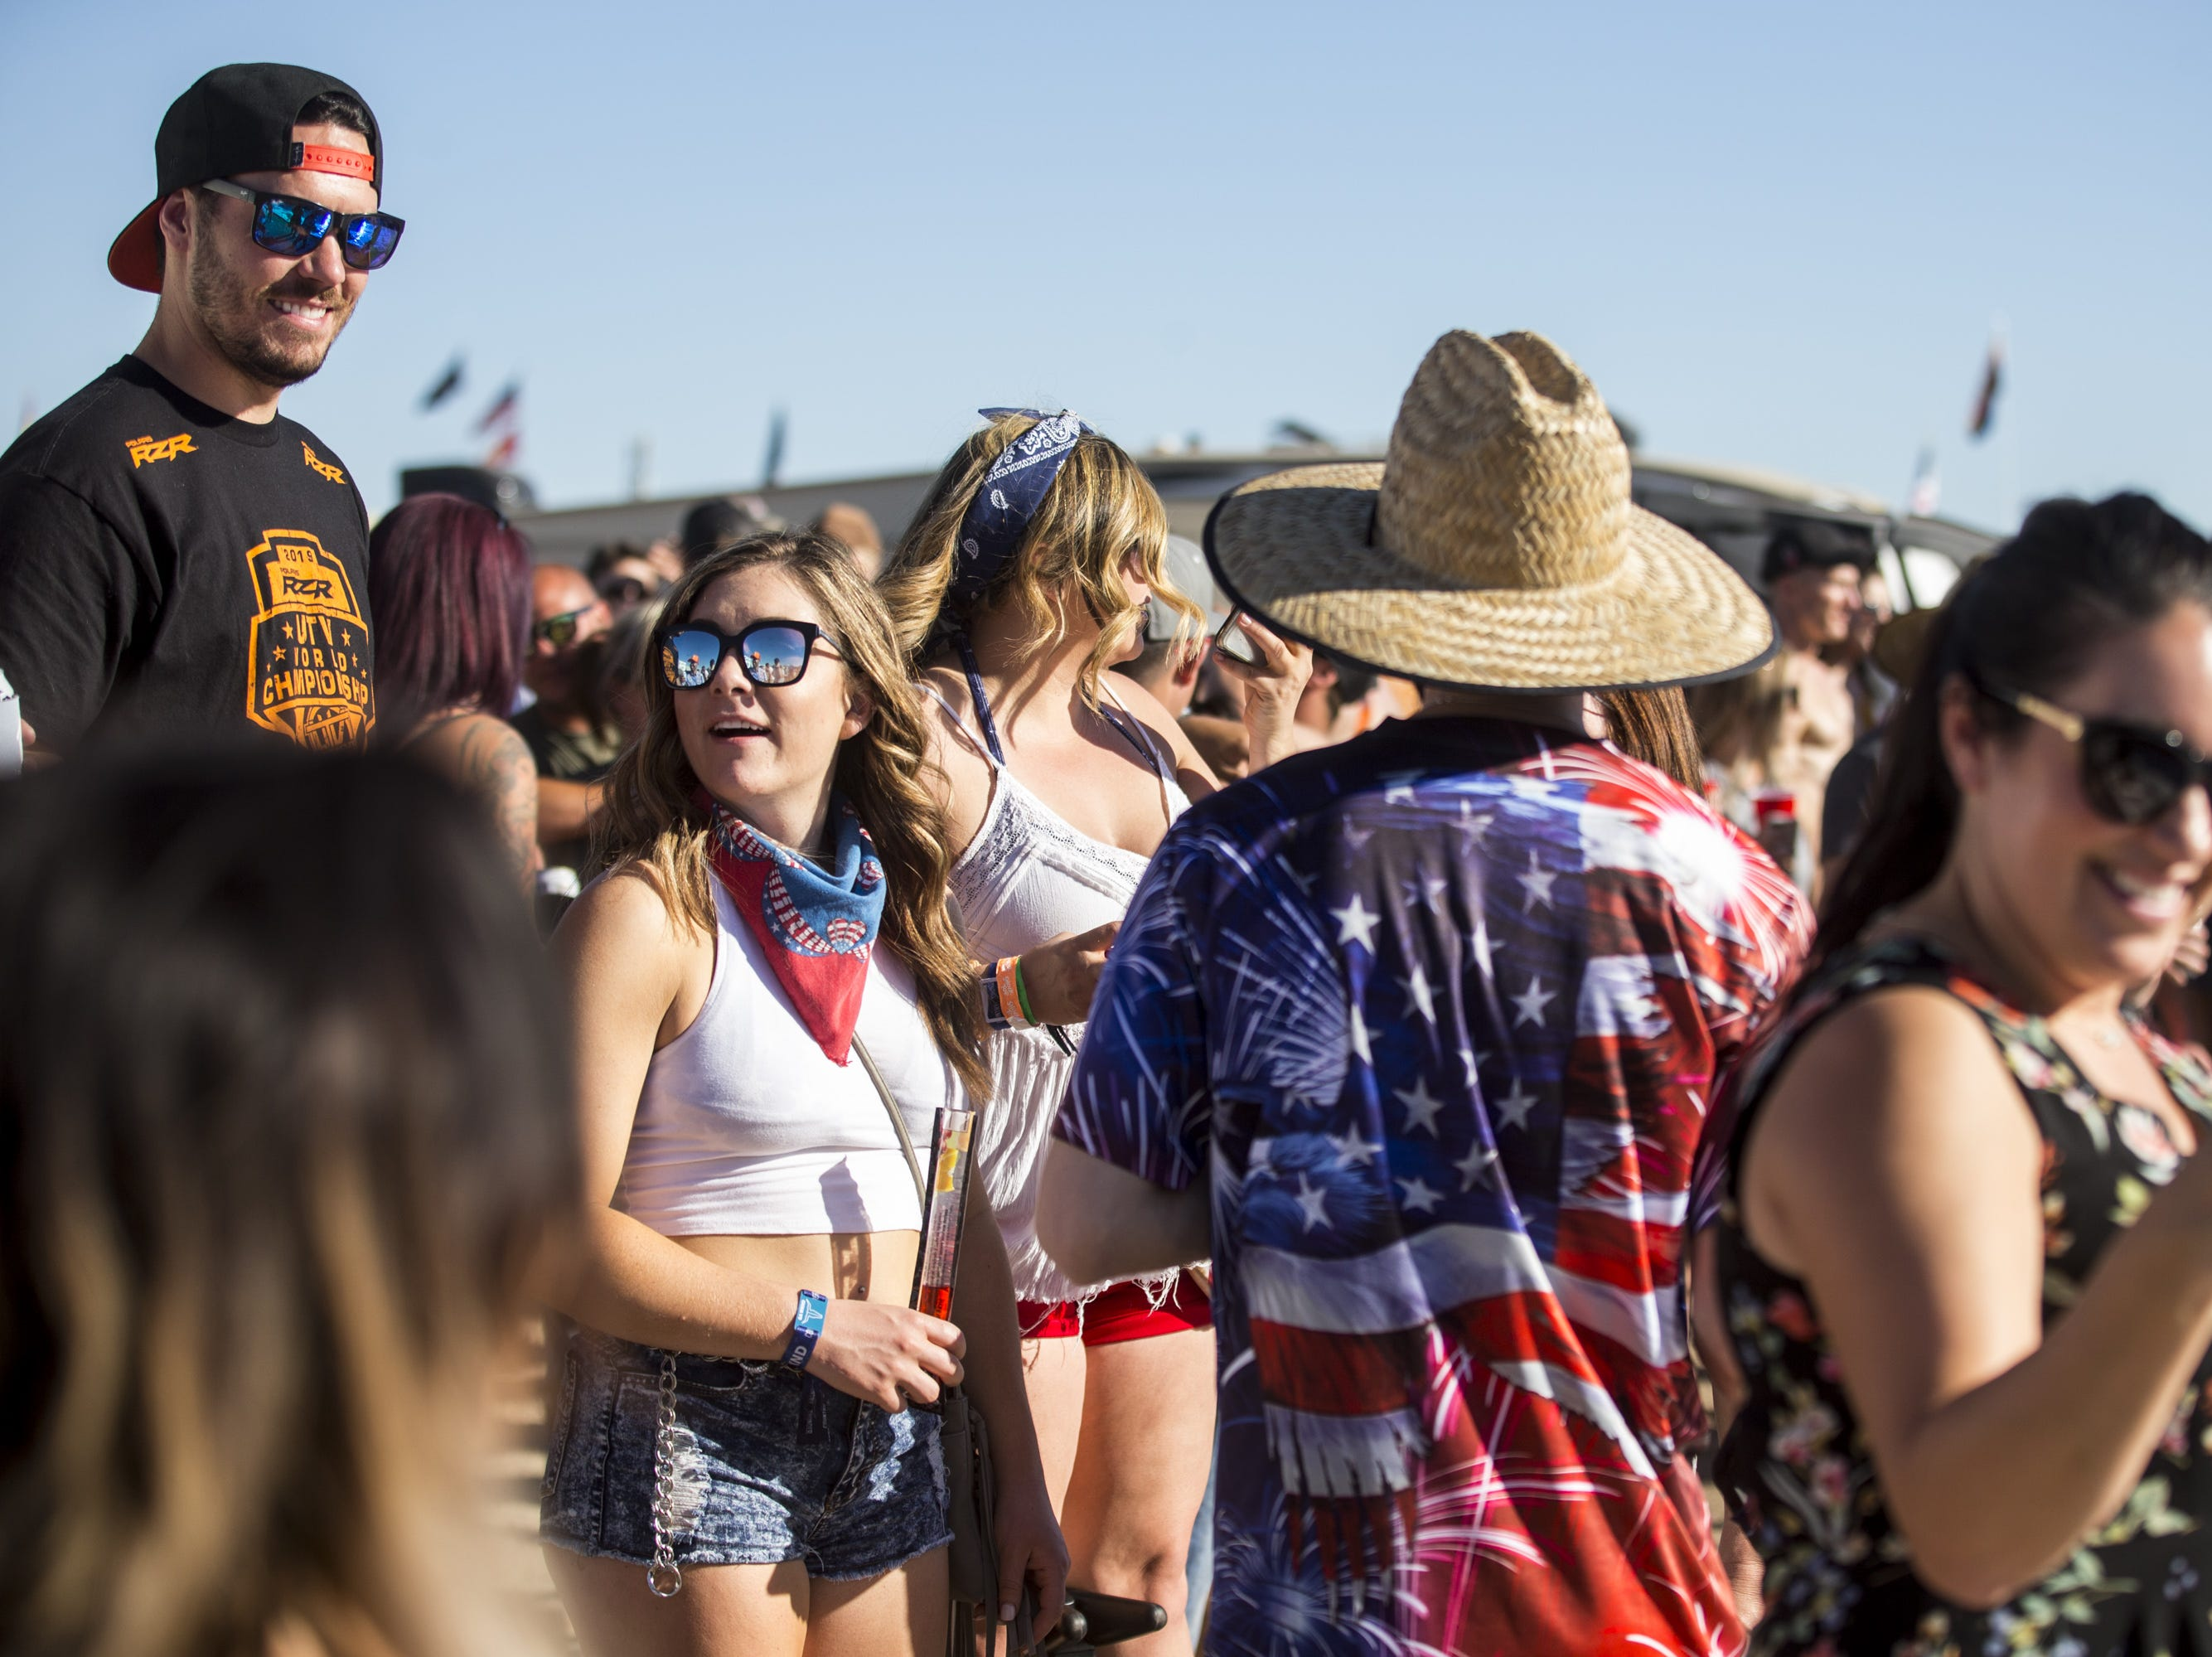 Festivalgoers watch people do a slip and slide on Saturday, Apr. 13, 2019, during Day 3 of Country Thunder Arizona in Florence, Ariz.